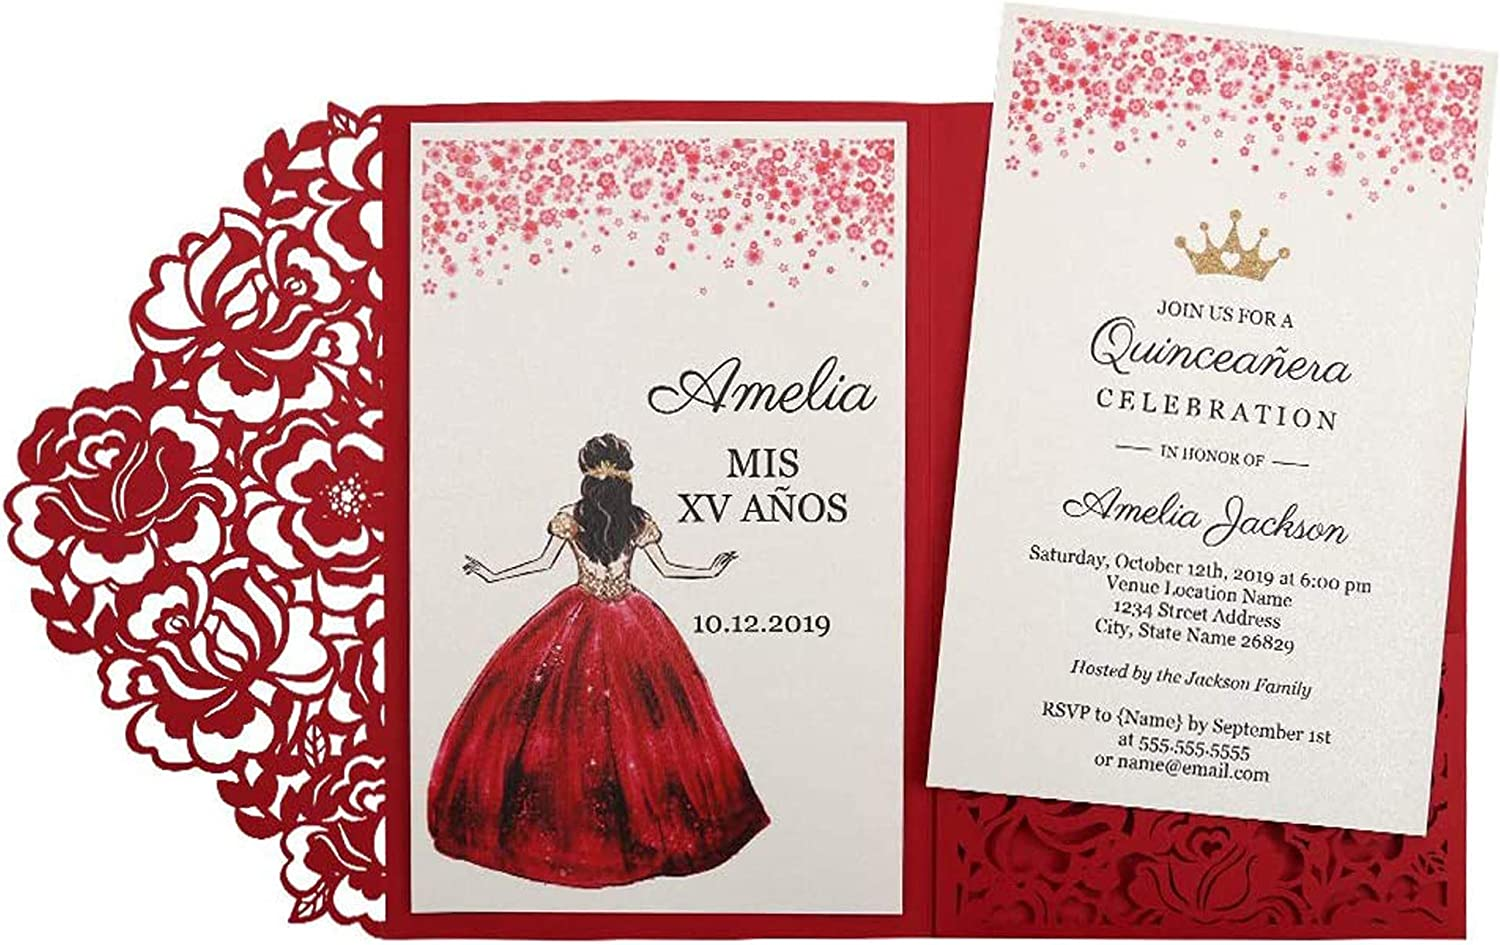 DORISHOME 4.7x7 Inch 50PCS Blank Red Quinceanera Invitations Kit Laser Cut Hollow Rose Pocket Quinceanera Invitation Cards with Envelopes for Quincenera Birthday quinceanera Invite